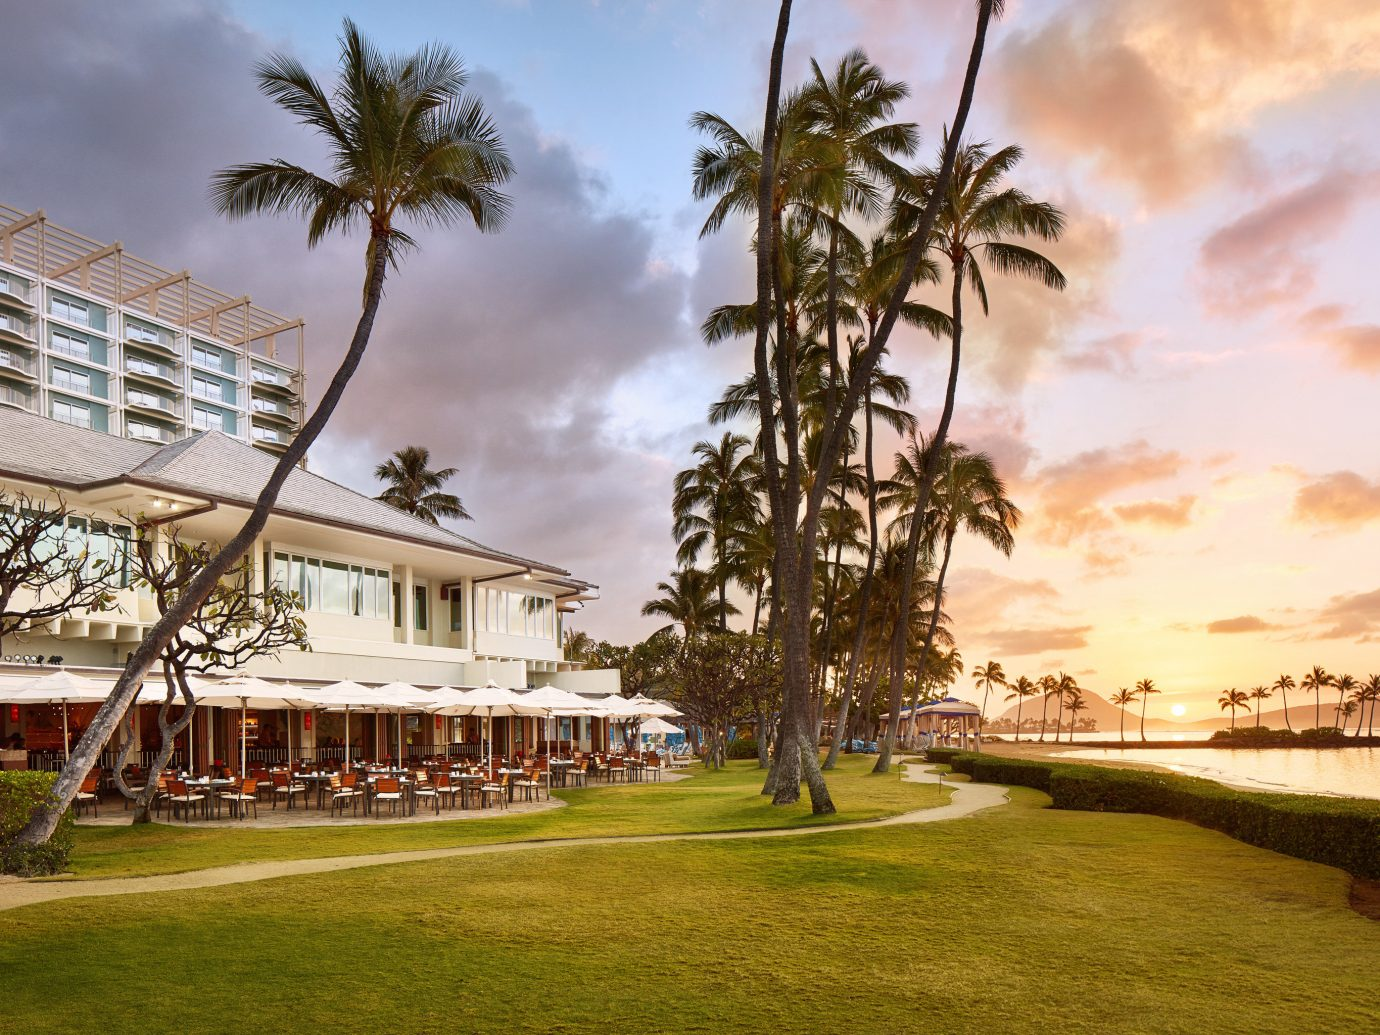 Boutique Hotels Hawaii Honolulu Hotels sky property Resort palm tree arecales real estate tree estate home tropics condominium vacation water plant cloud Sea house landscape leisure evening tourism hotel Ocean